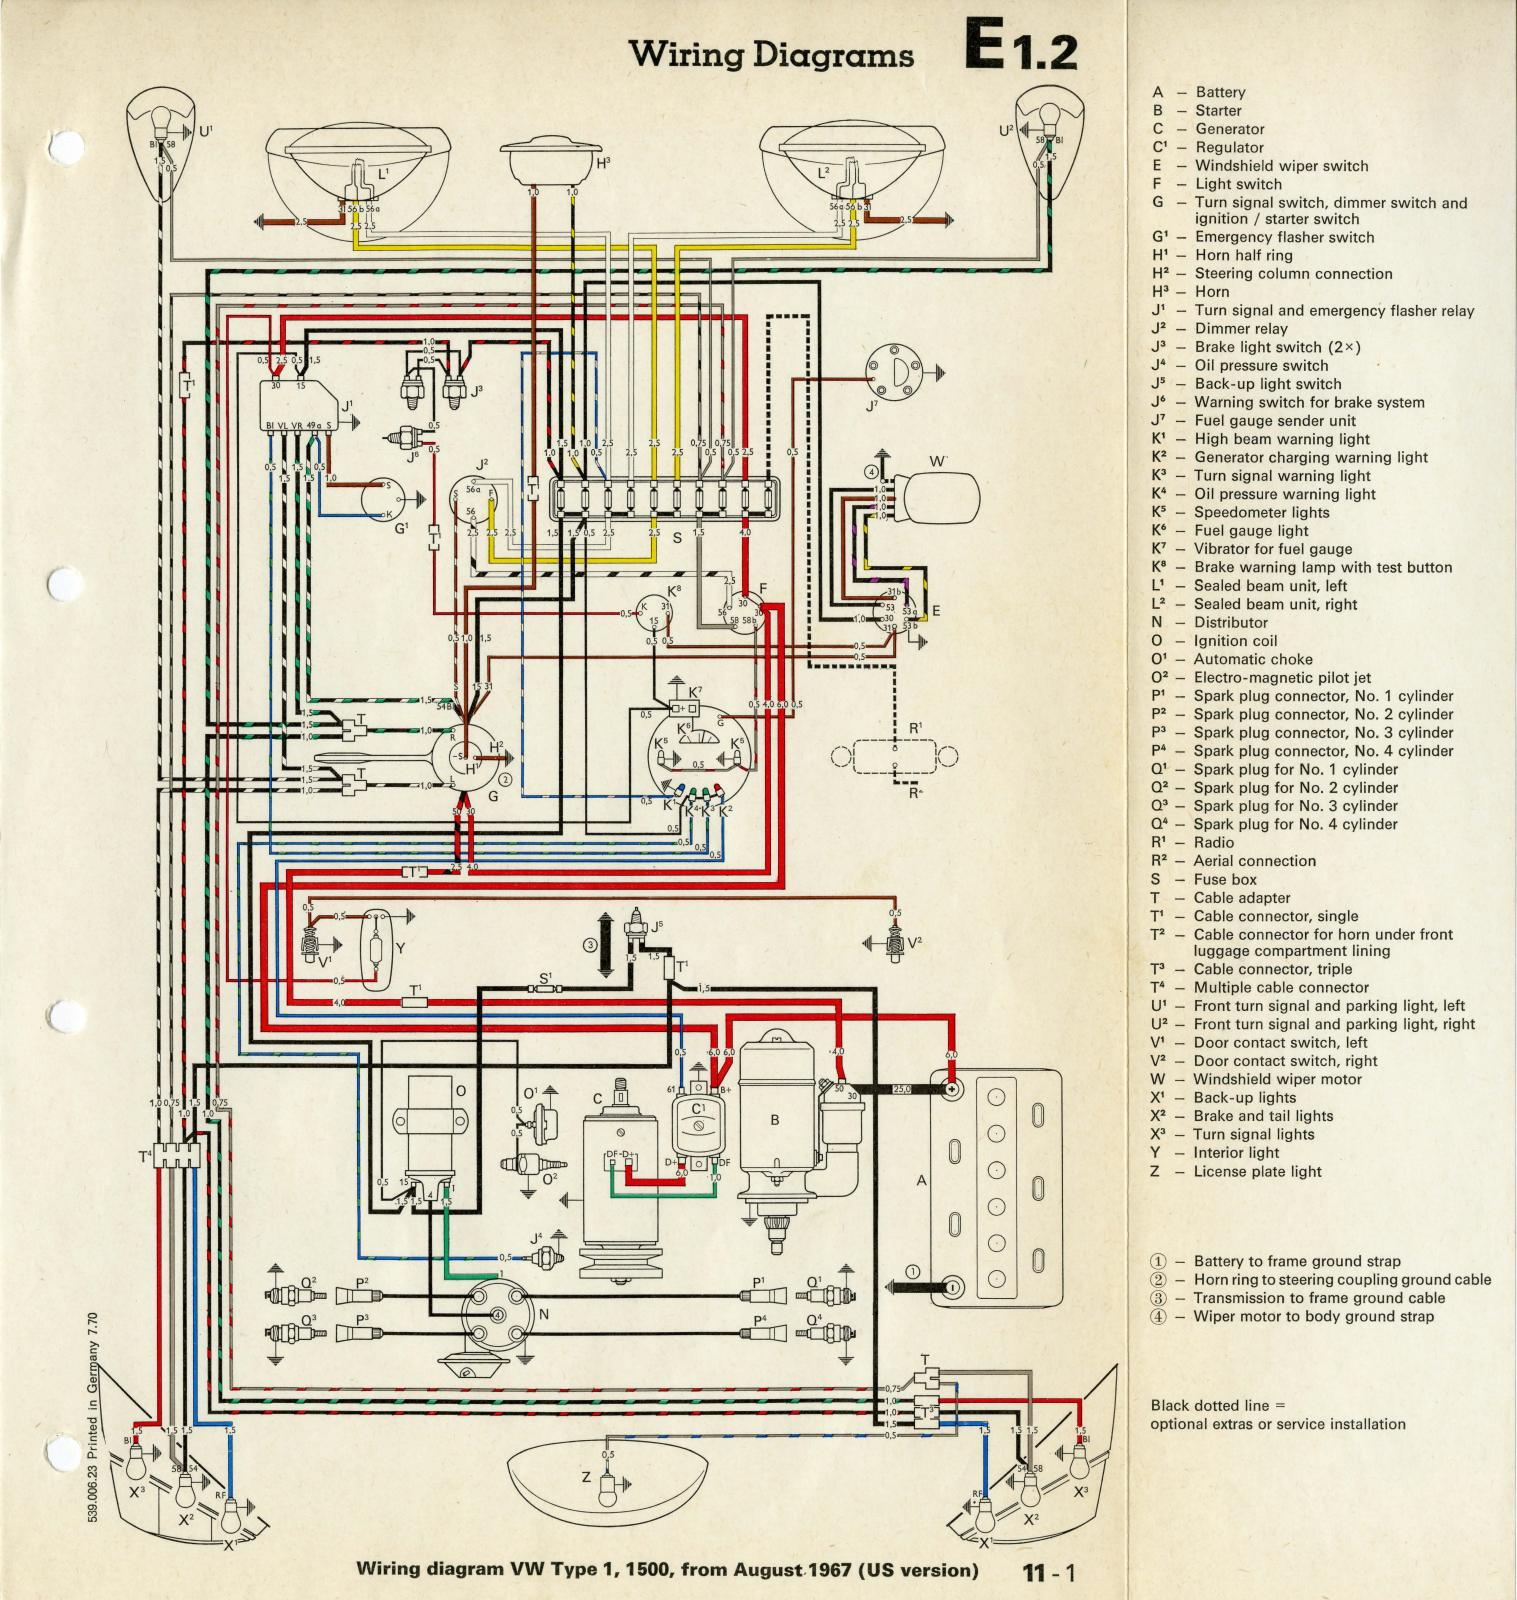 Vw Beetle Autostick Wiring Diagram Libraries Automatic Stick Shift Circuit For Type 1 Sedan 111 And 113 From Thesamba Com Late Model Super 1968 Up View Topicimage May Have Been Reduced In Size